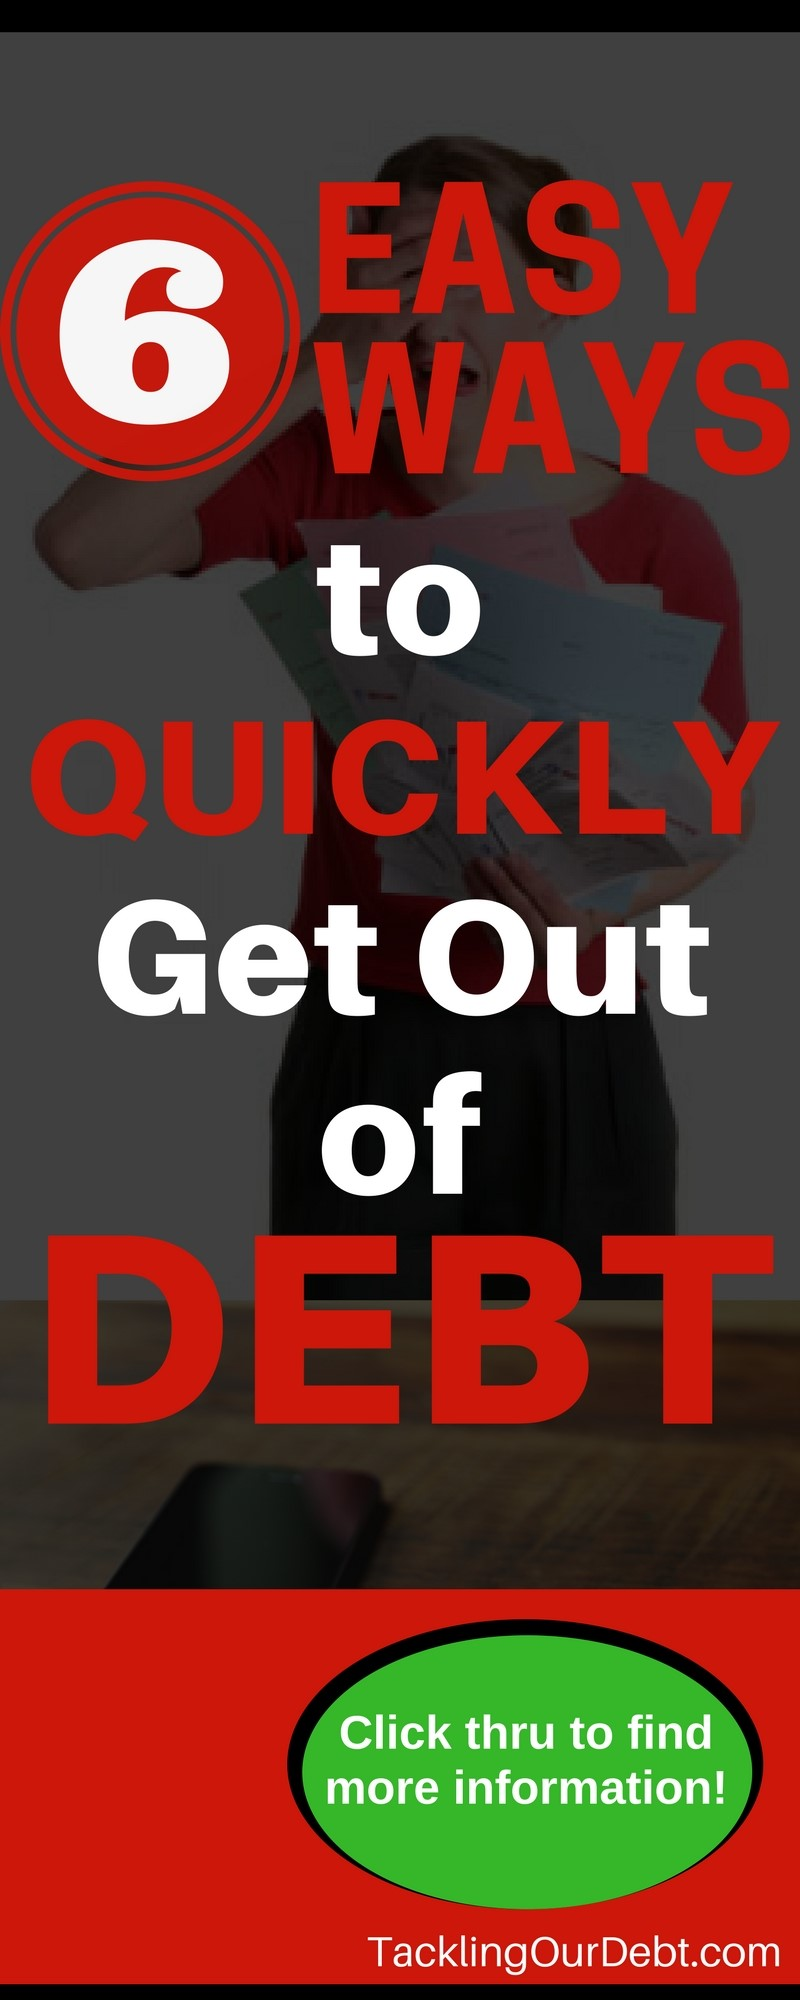 Six Easy Ways to Quickly Get Out of Debt and Put Your Personal Finances in Order. Click thru for more information.